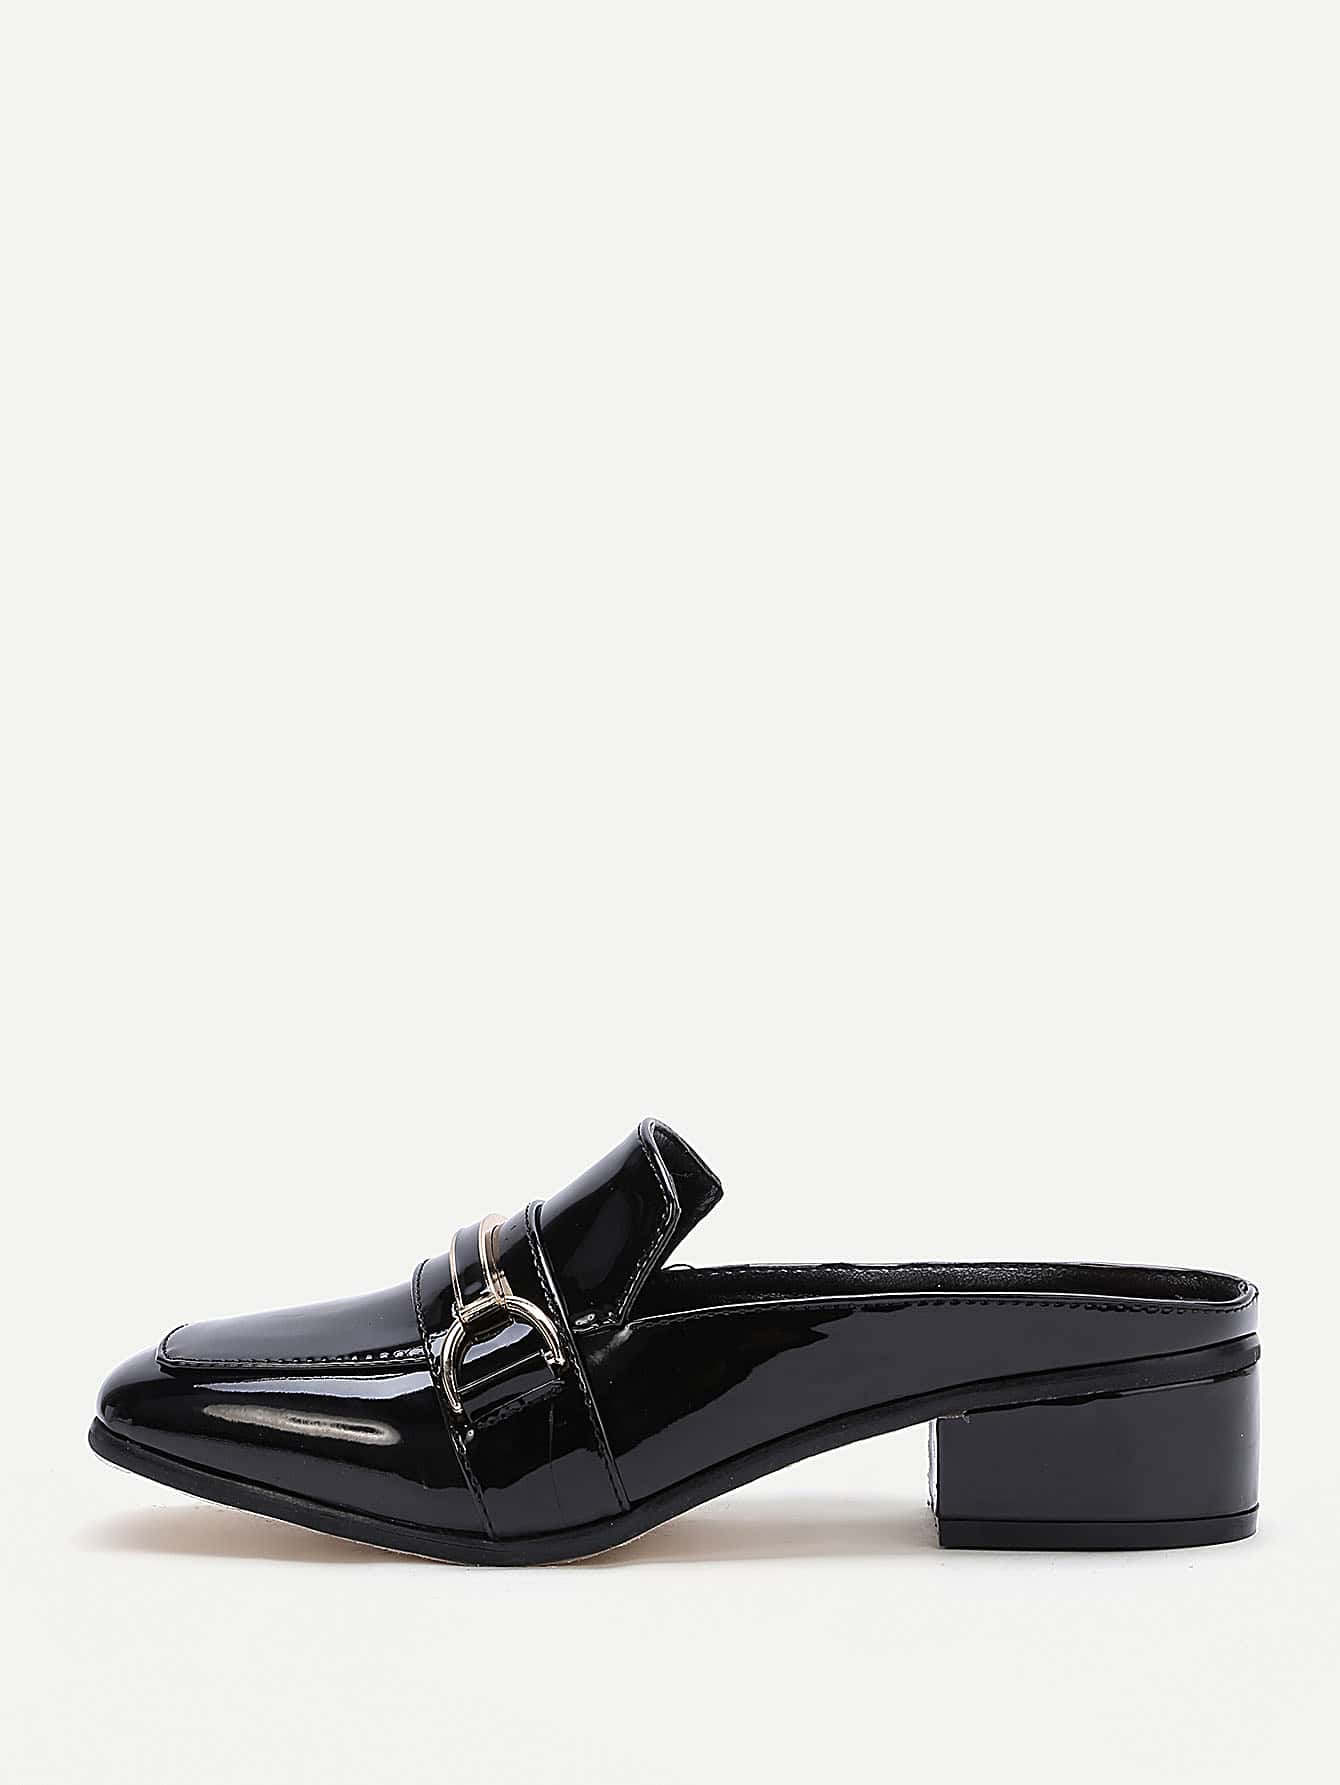 Black Patent Leather Heeled Slippers shoes170306808